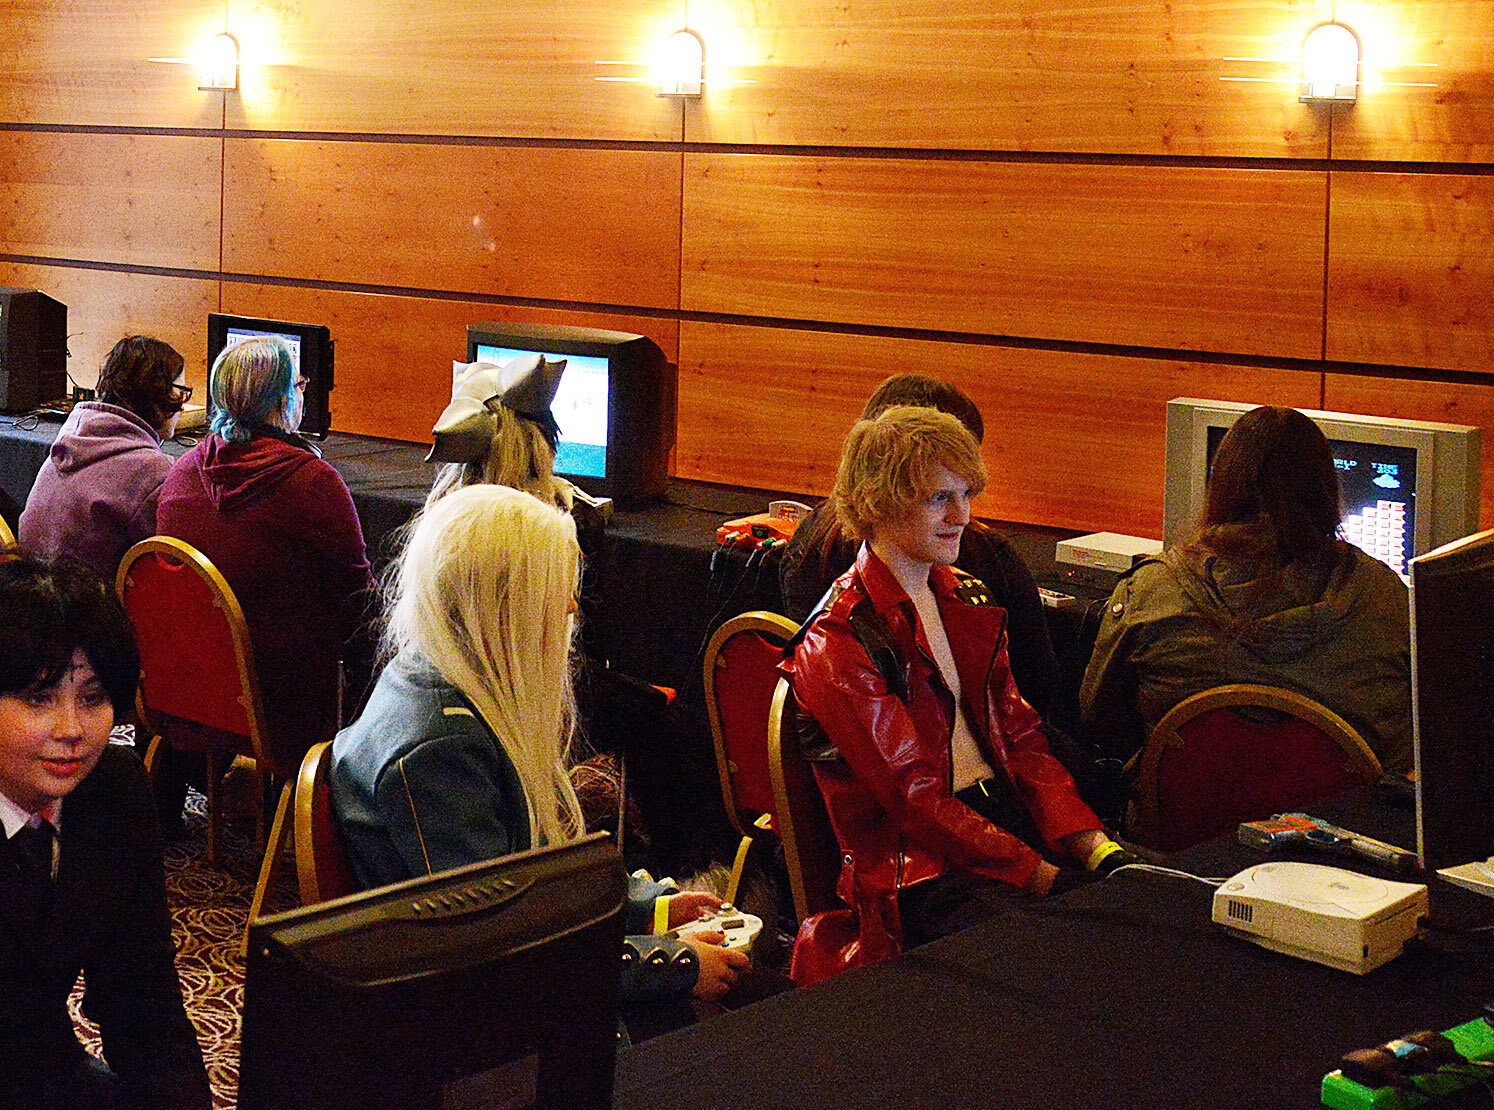 GAMING  Whether it's RETRO GAMING, TABLE TOP or TRADING CARD, we've got it covered at Rai Con with 3 dedicated areas.